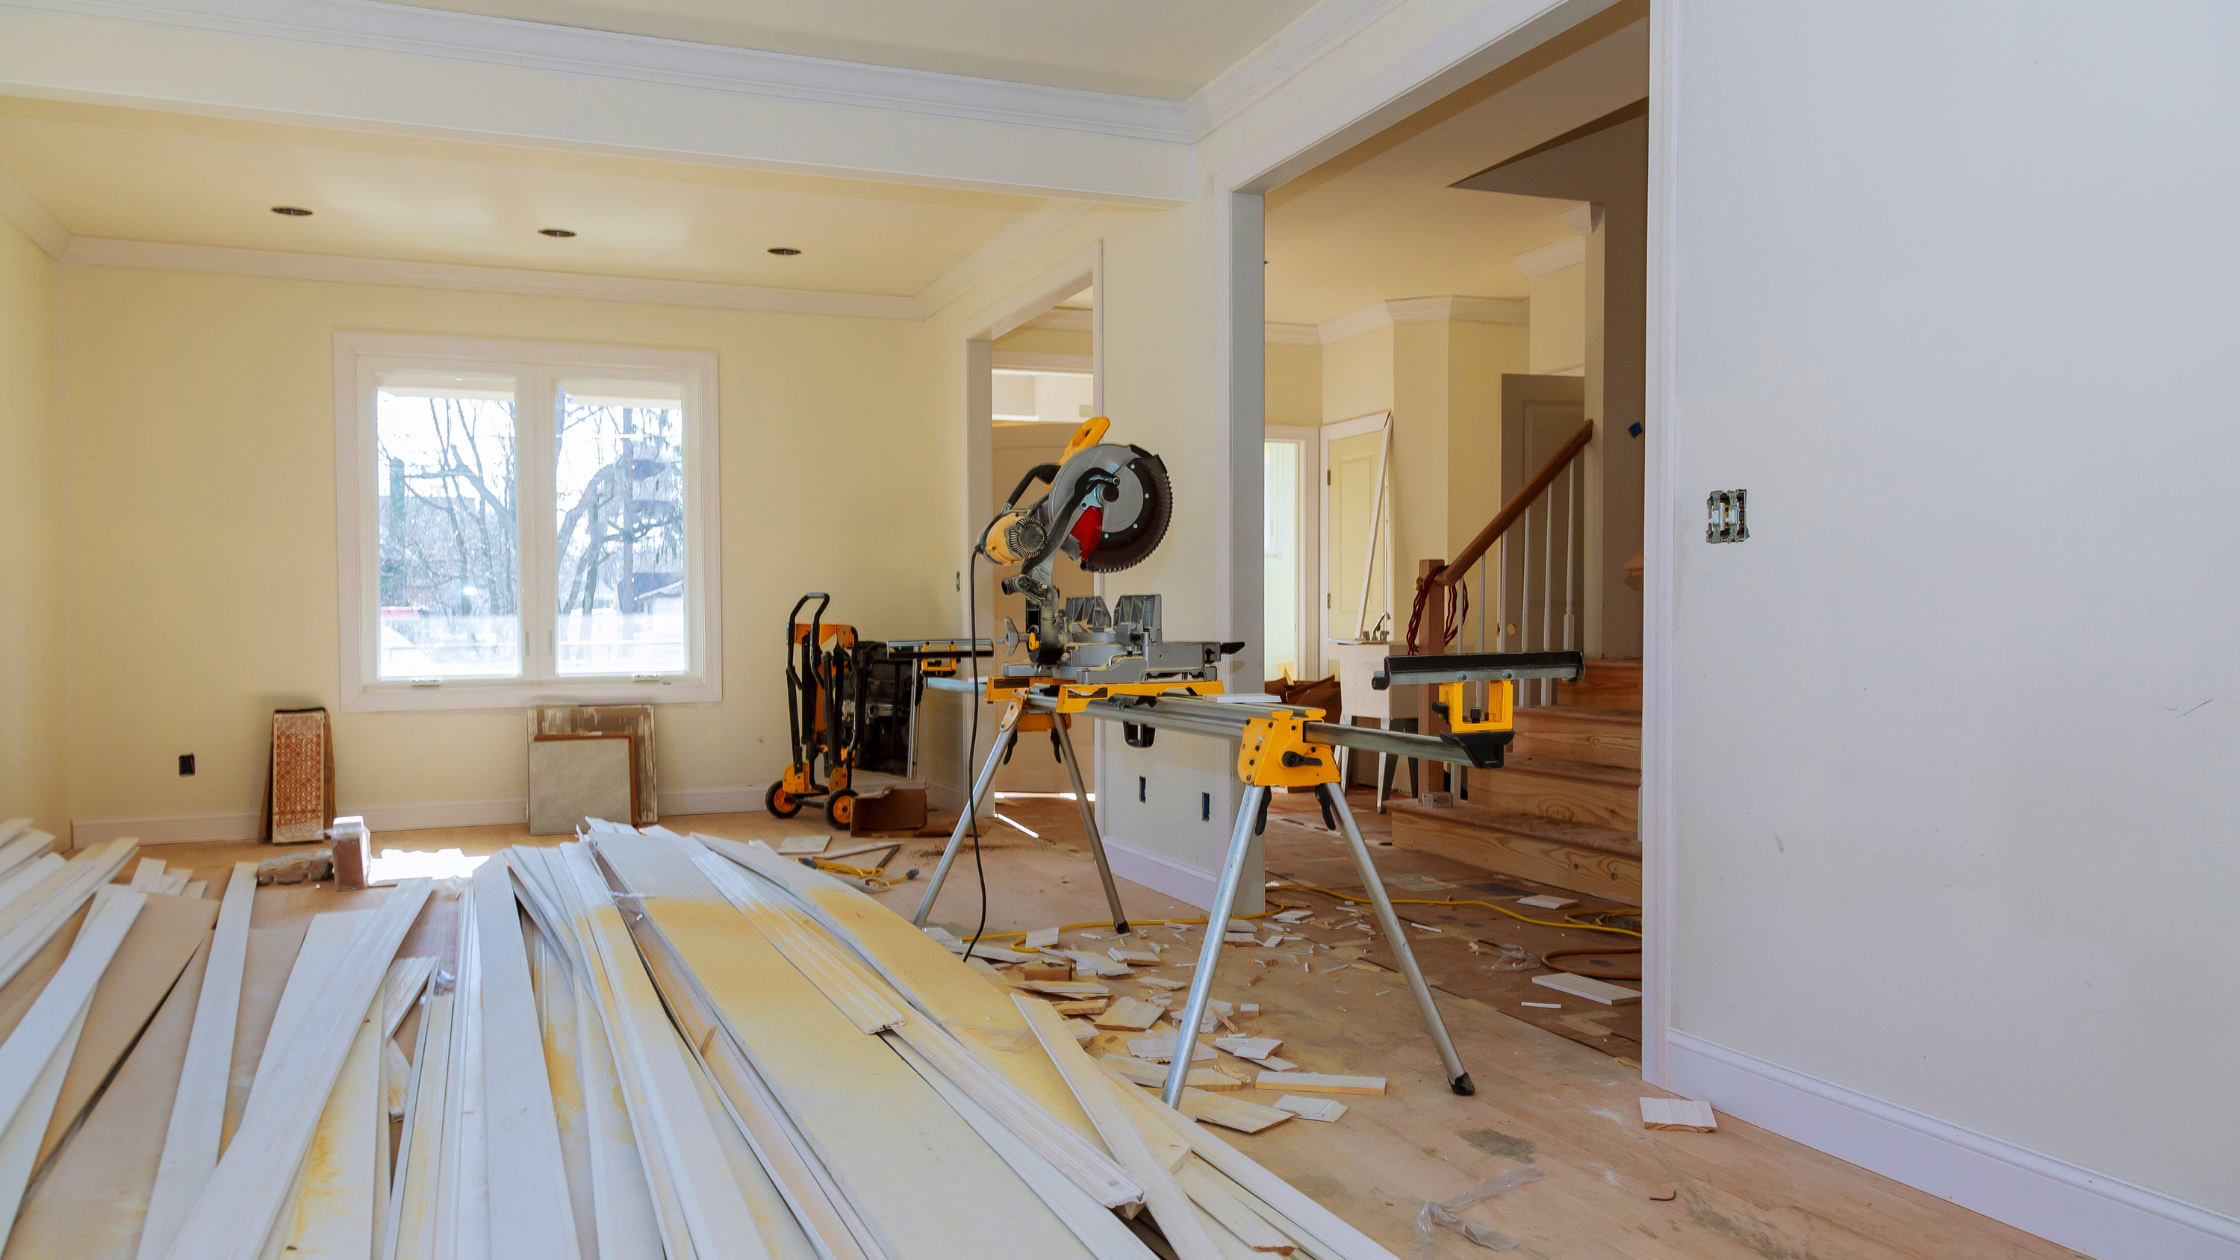 Before You Remodel Your Home – Check the Foundation